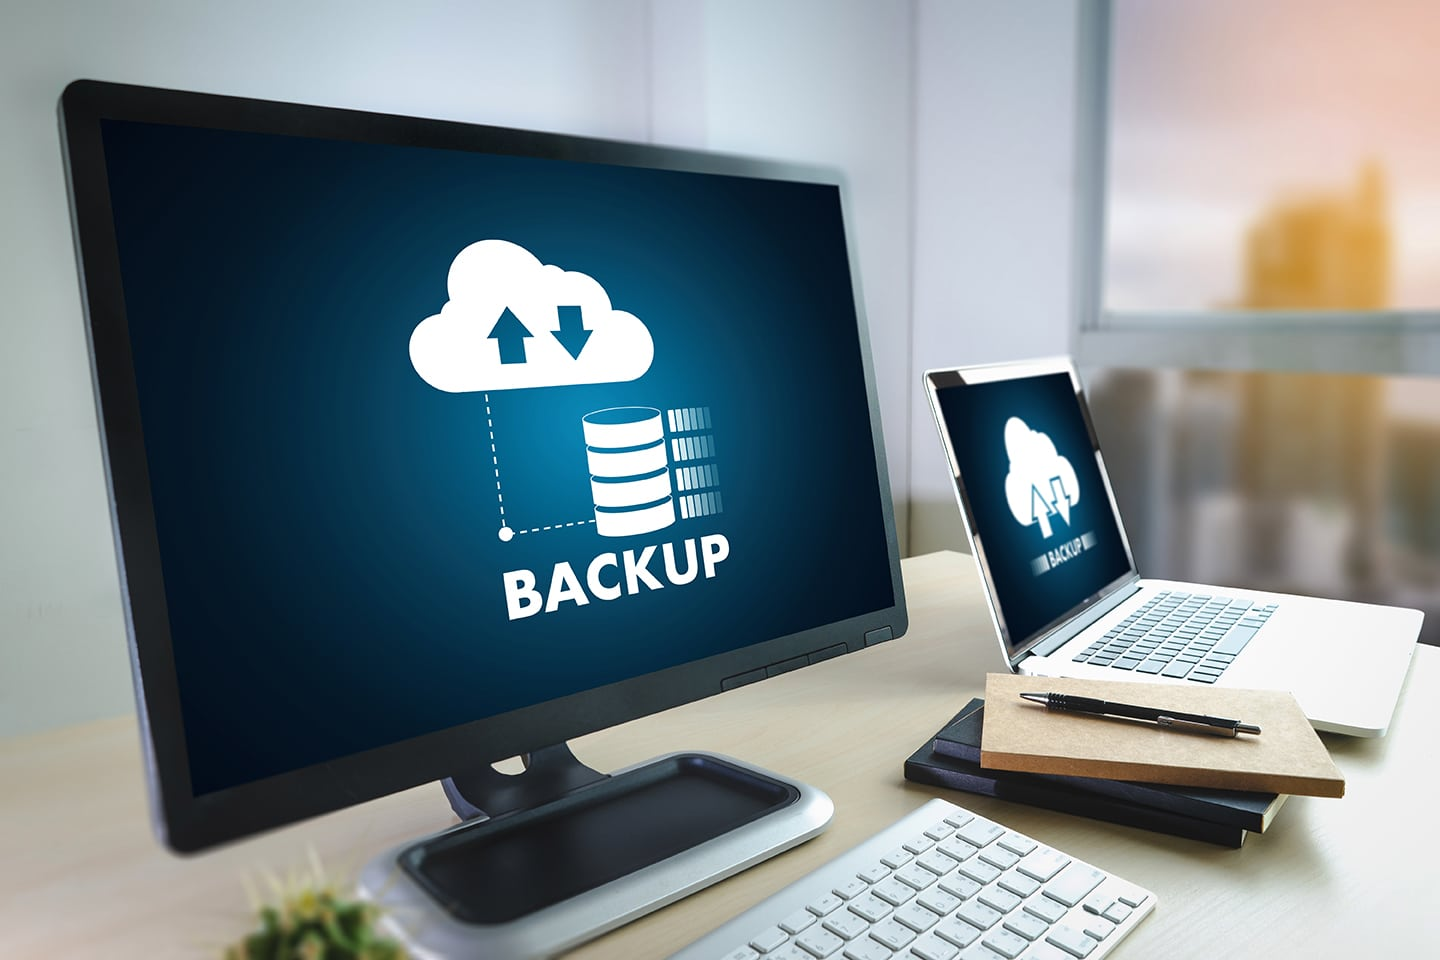 data backup being performed on desktop computer and laptop